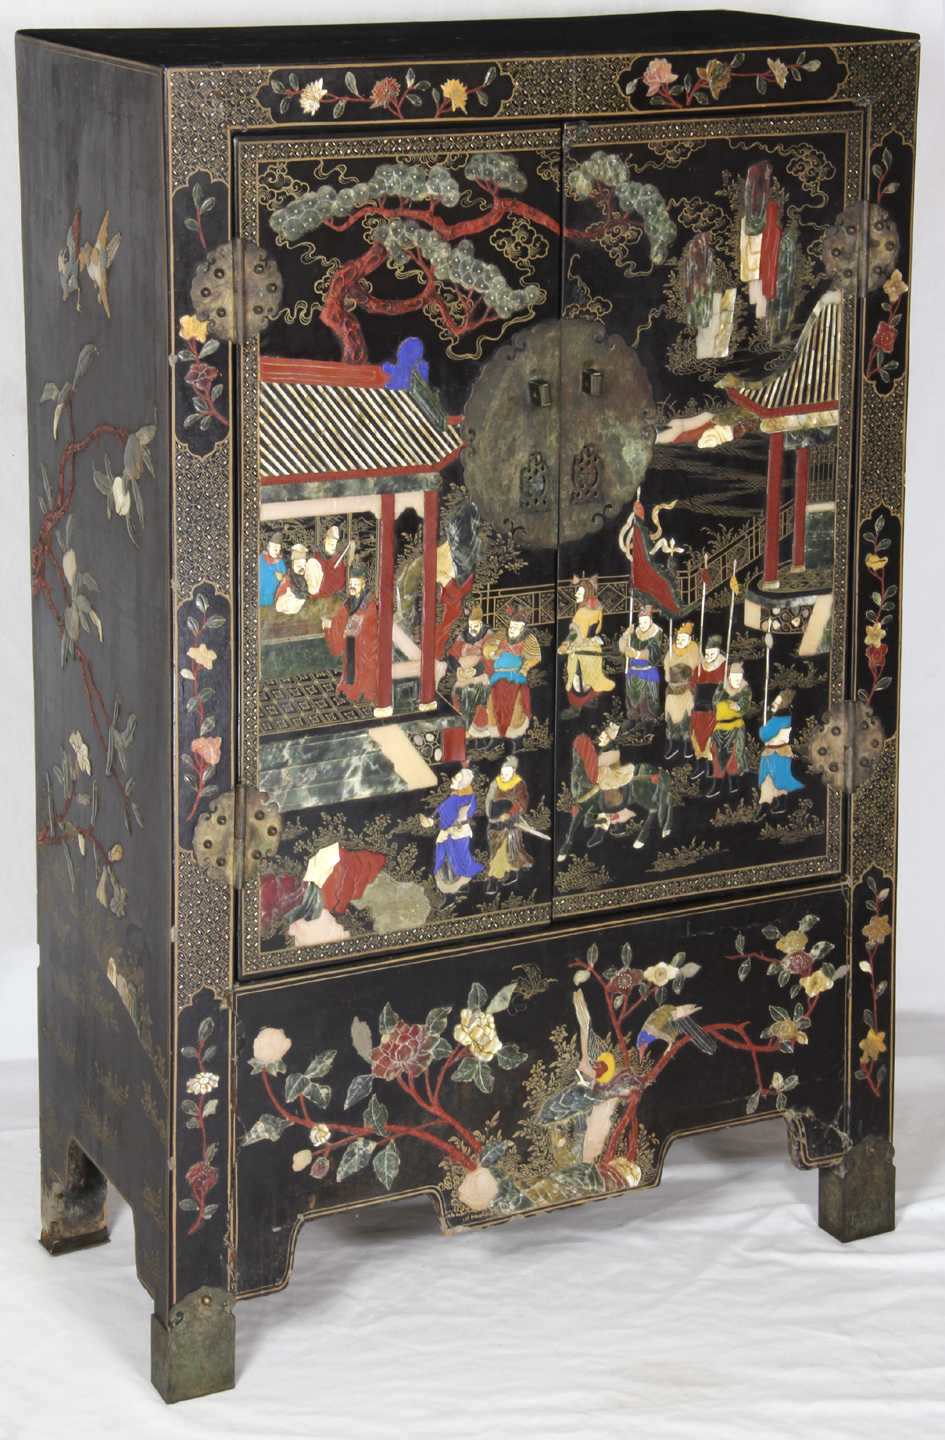 Chinese Lacquer Decorated Cabinet Inlaid With Jade Ivory Lapis Cinnabar And Other Stones